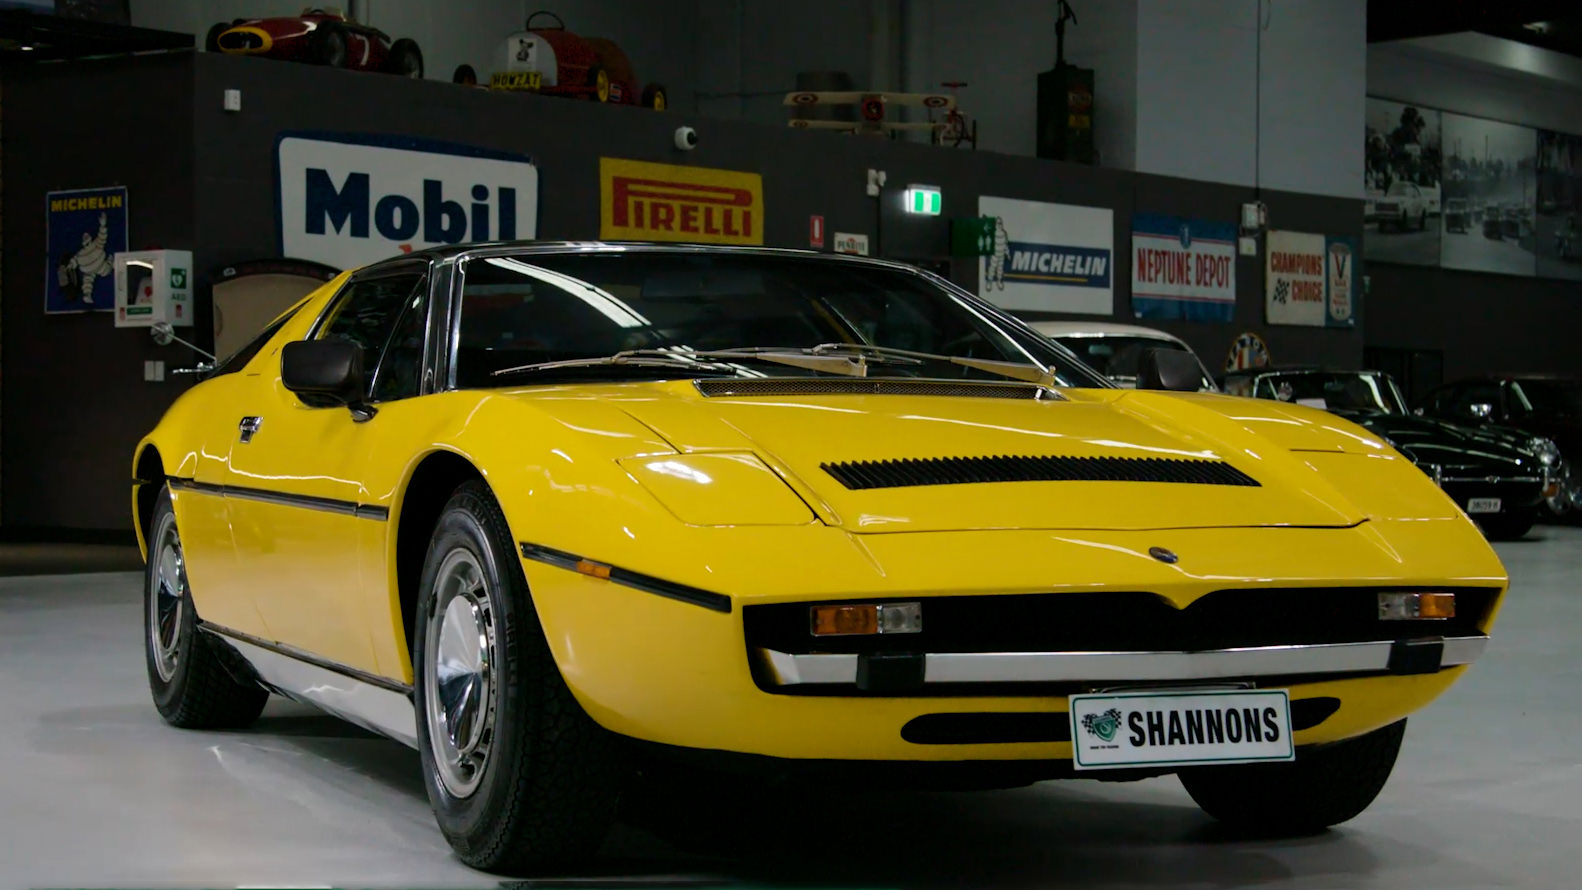 1974 Maserati Bora 4.9 Coupe (LHD) - 2021 Shannons Summer Timed Online Auction